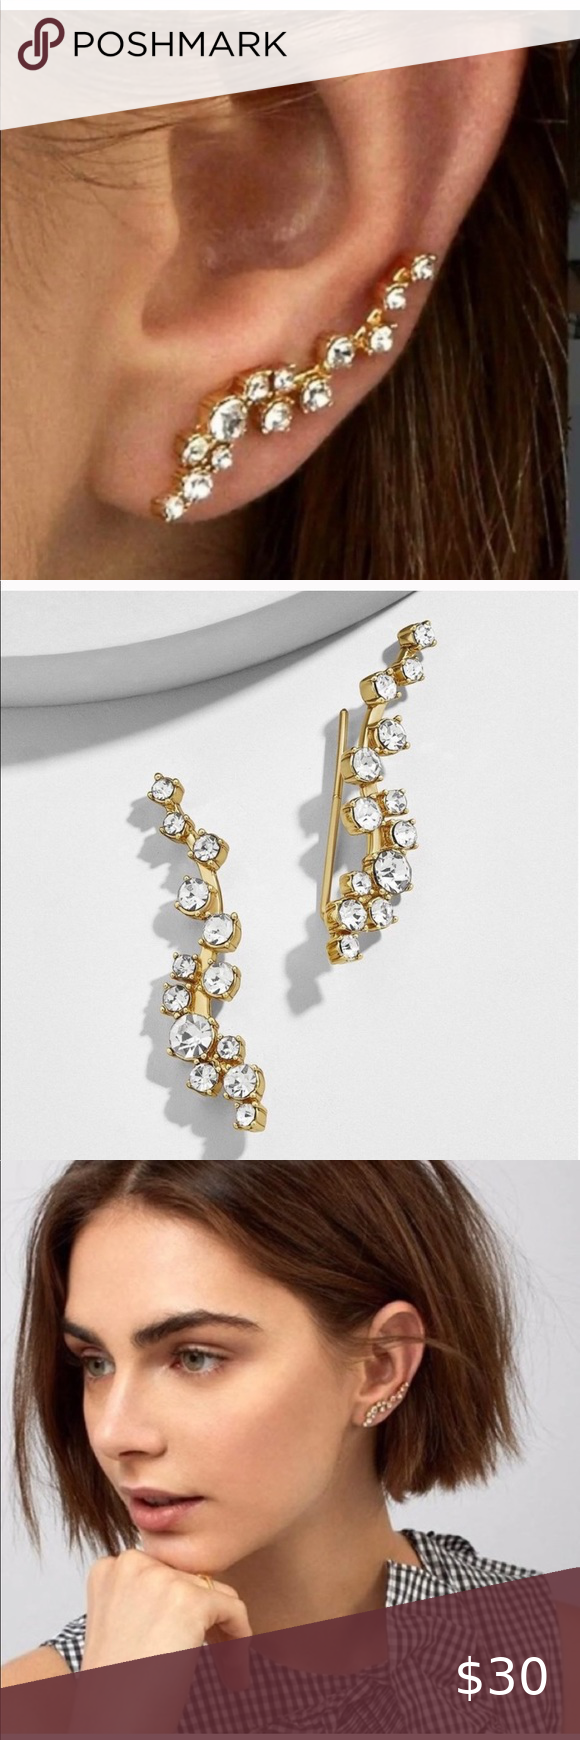 BaubleBar Farah Crawlers Earrings Check out this l